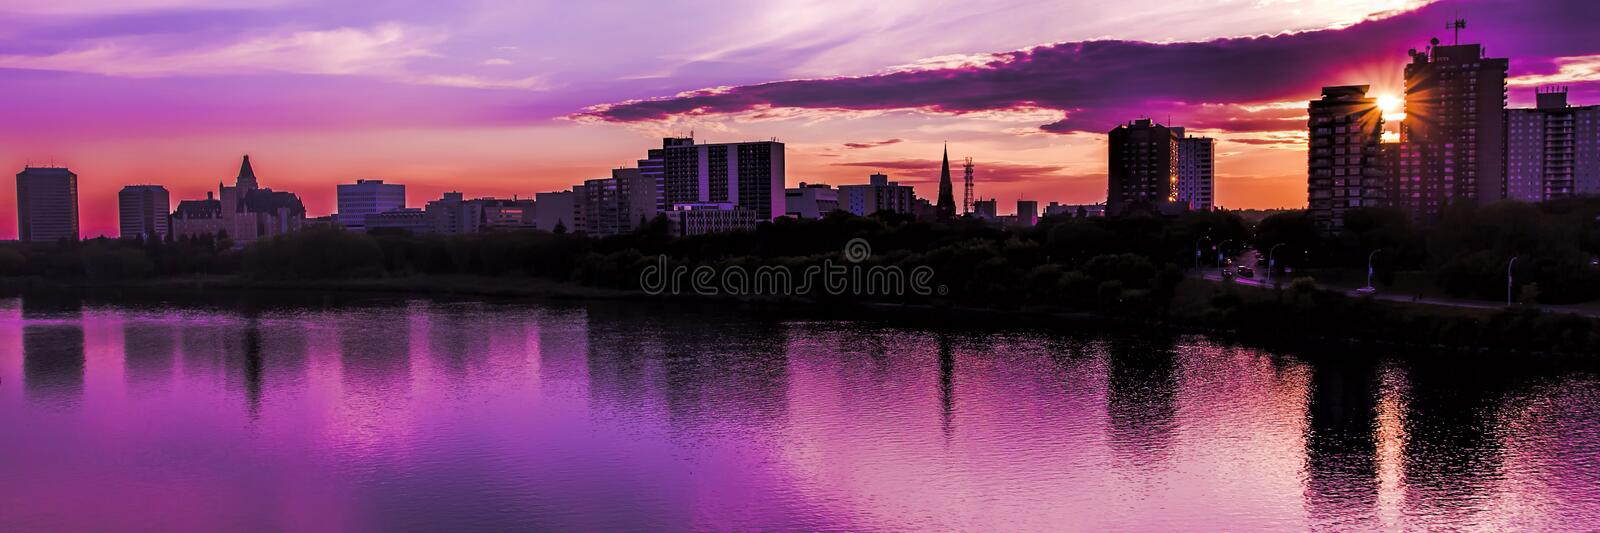 Saskatoon Skyline royalty free stock images